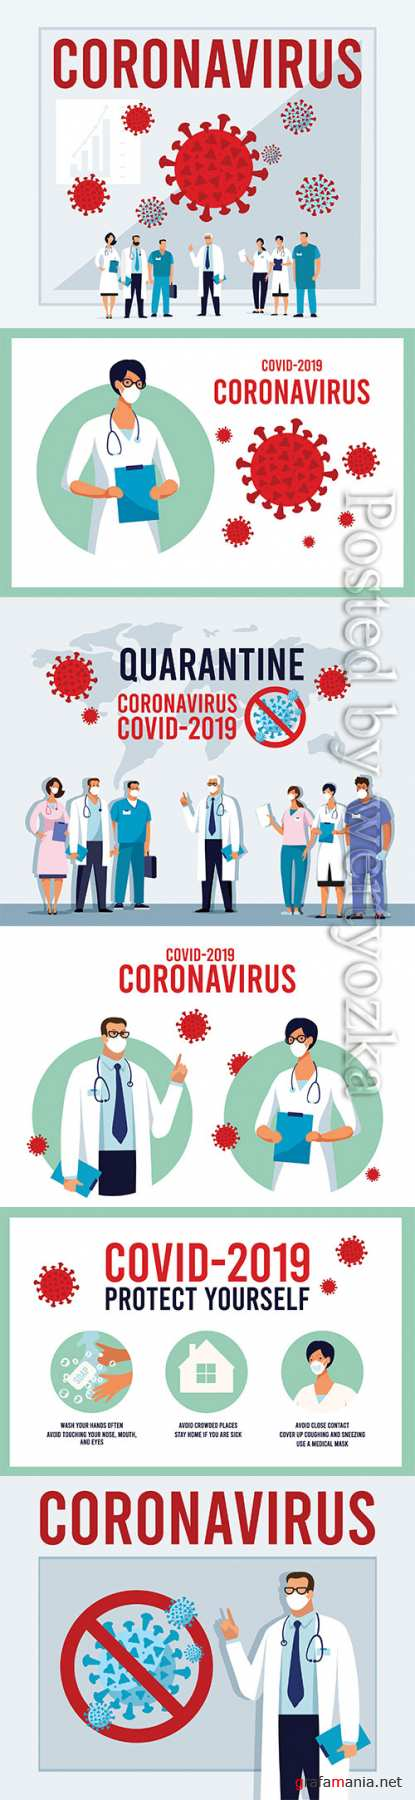 Novel coronavirus 2019-nCoV Conceptual vector illustration